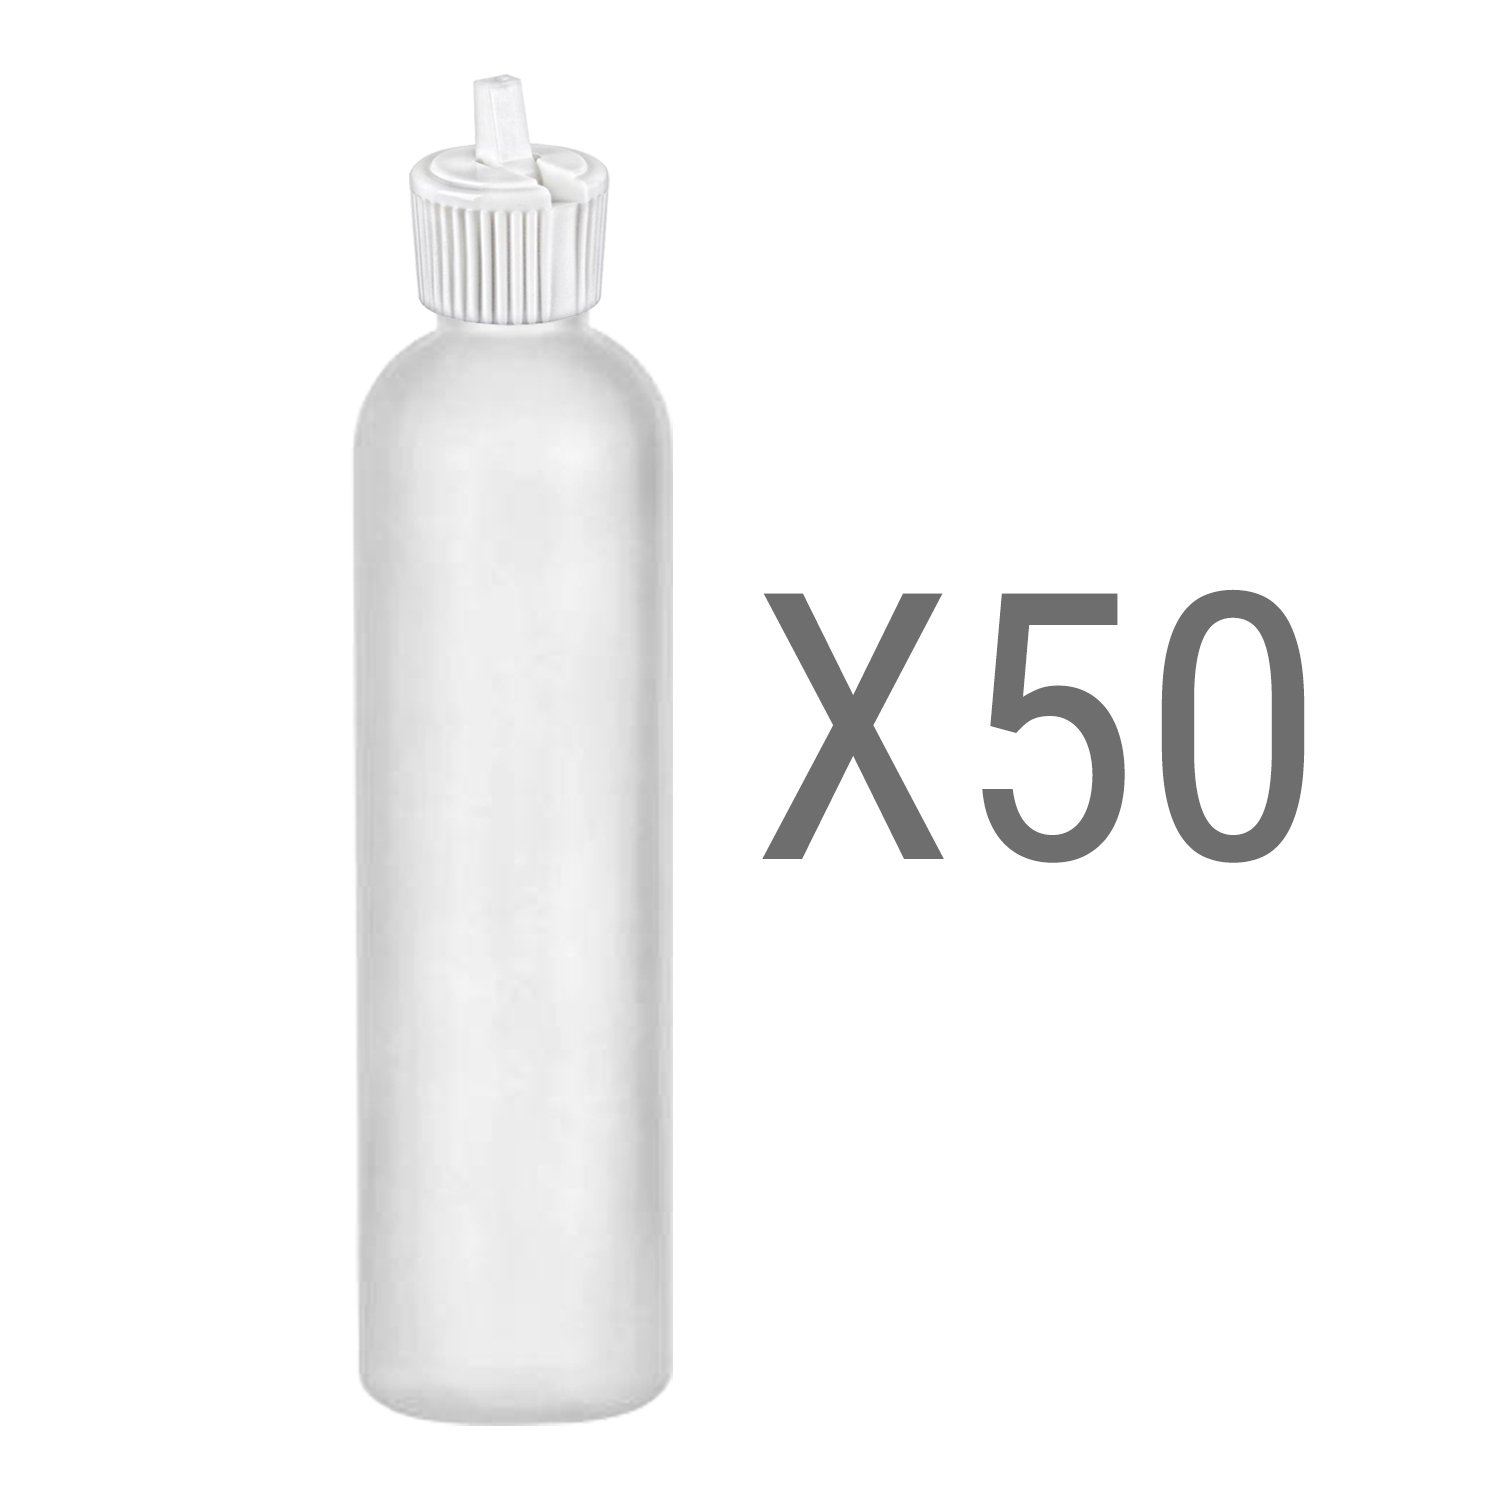 MoYo Natural Labs 8 oz Squirt Bottles, Squeezable Empty Refillable Containers Turret Caps, BPA Free HDPE Plastic for Essential Oils and Liquids Toiletry/Cosmetic Bottles (Pack of 50 Translucent White)